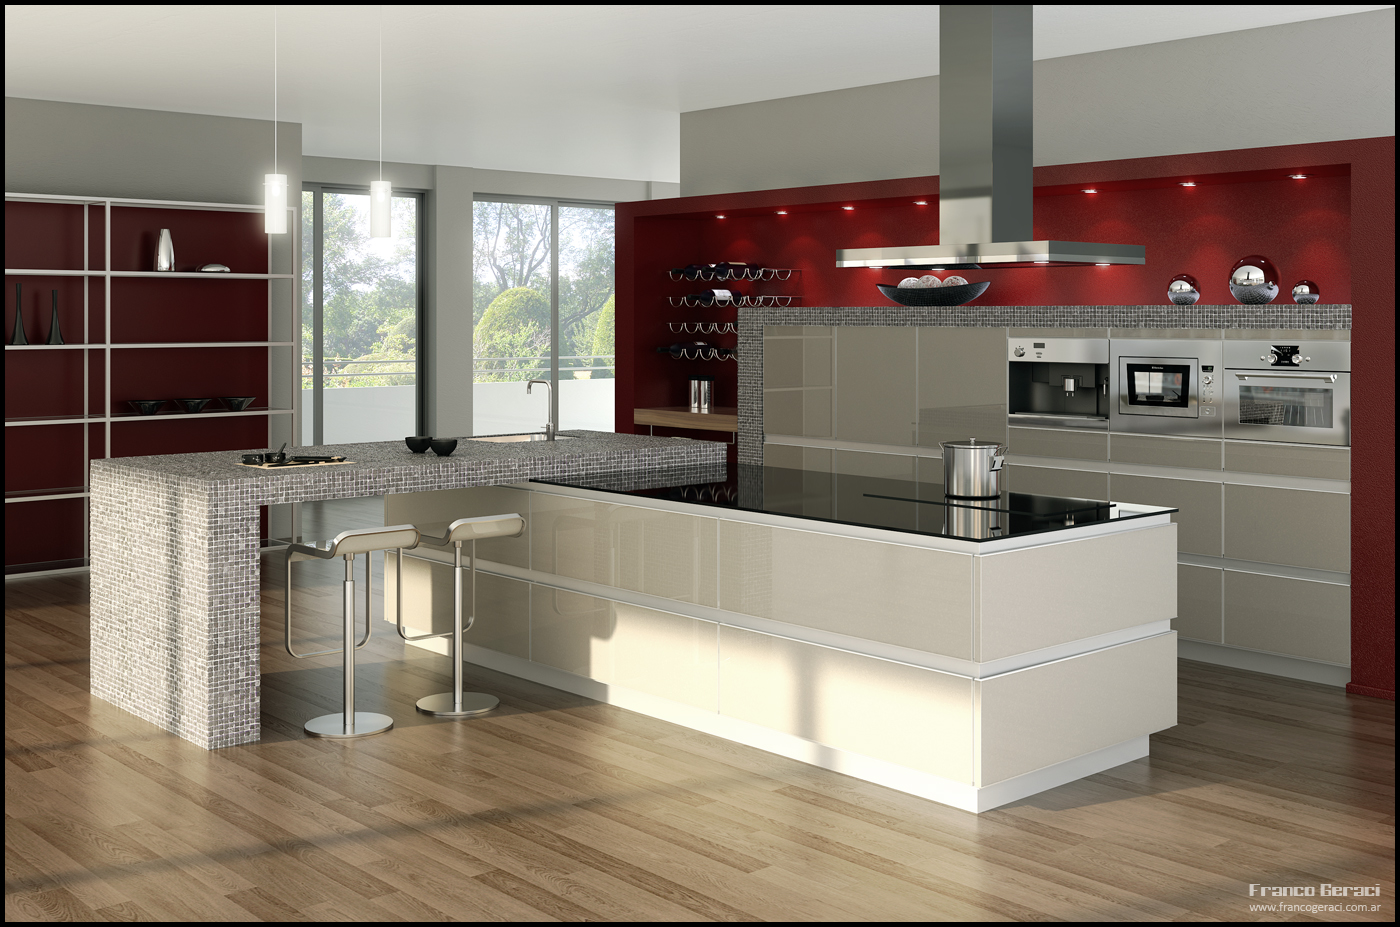 Medium image of kitchen 3d design images  kitchen 3d design images